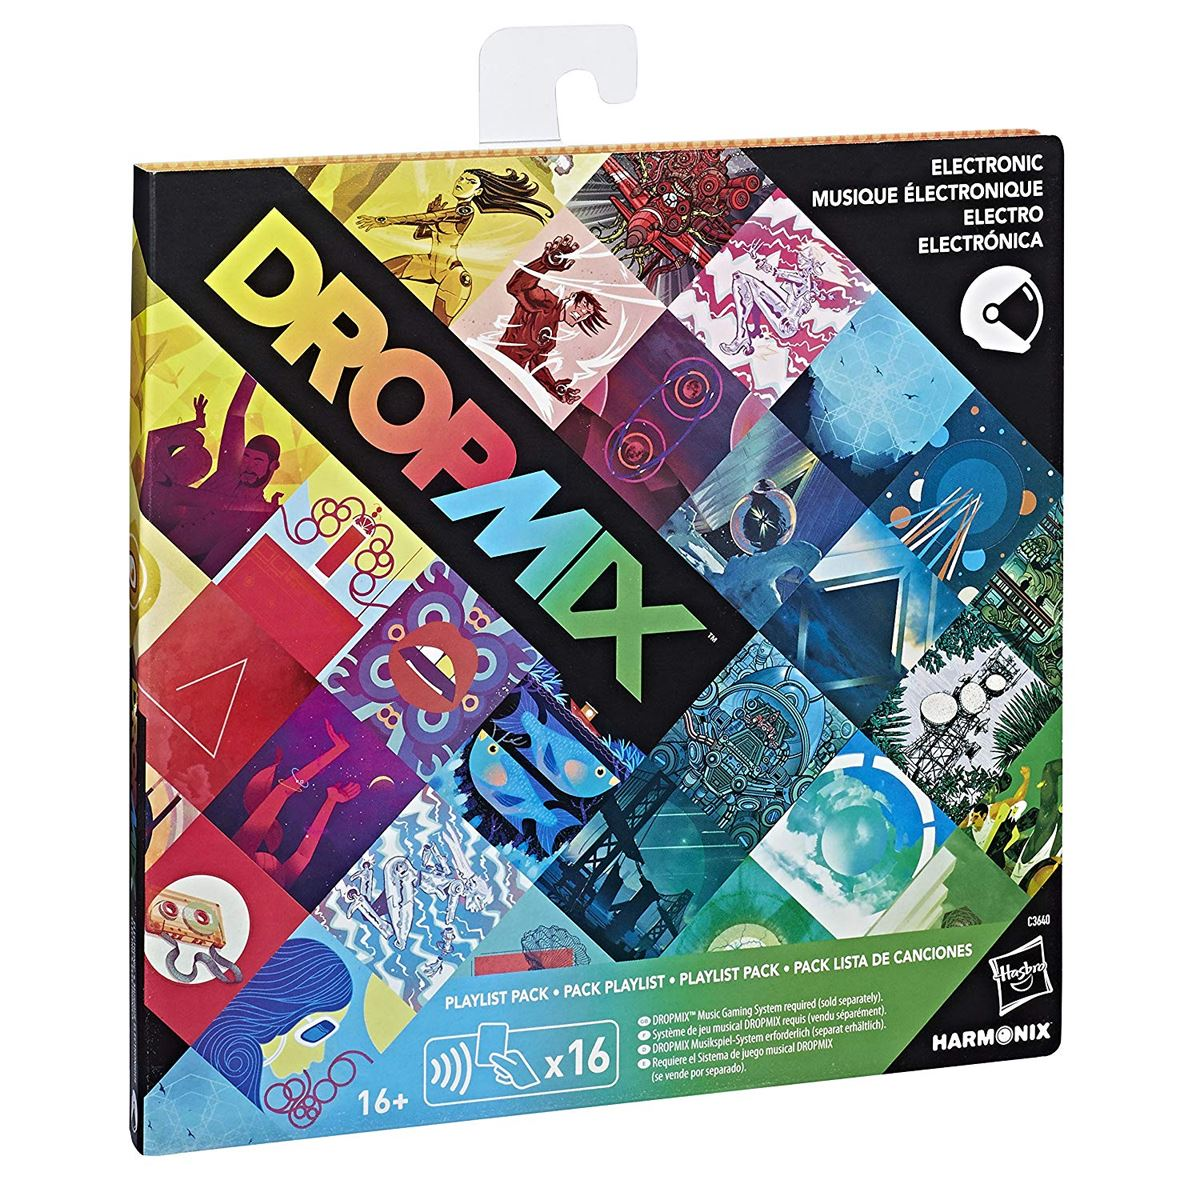 New-Dropmix-Rock-Pop-Hip-Hop-Or-Electronic-Playlist-Card-Pack-Hasbro-Official miniatuur 6